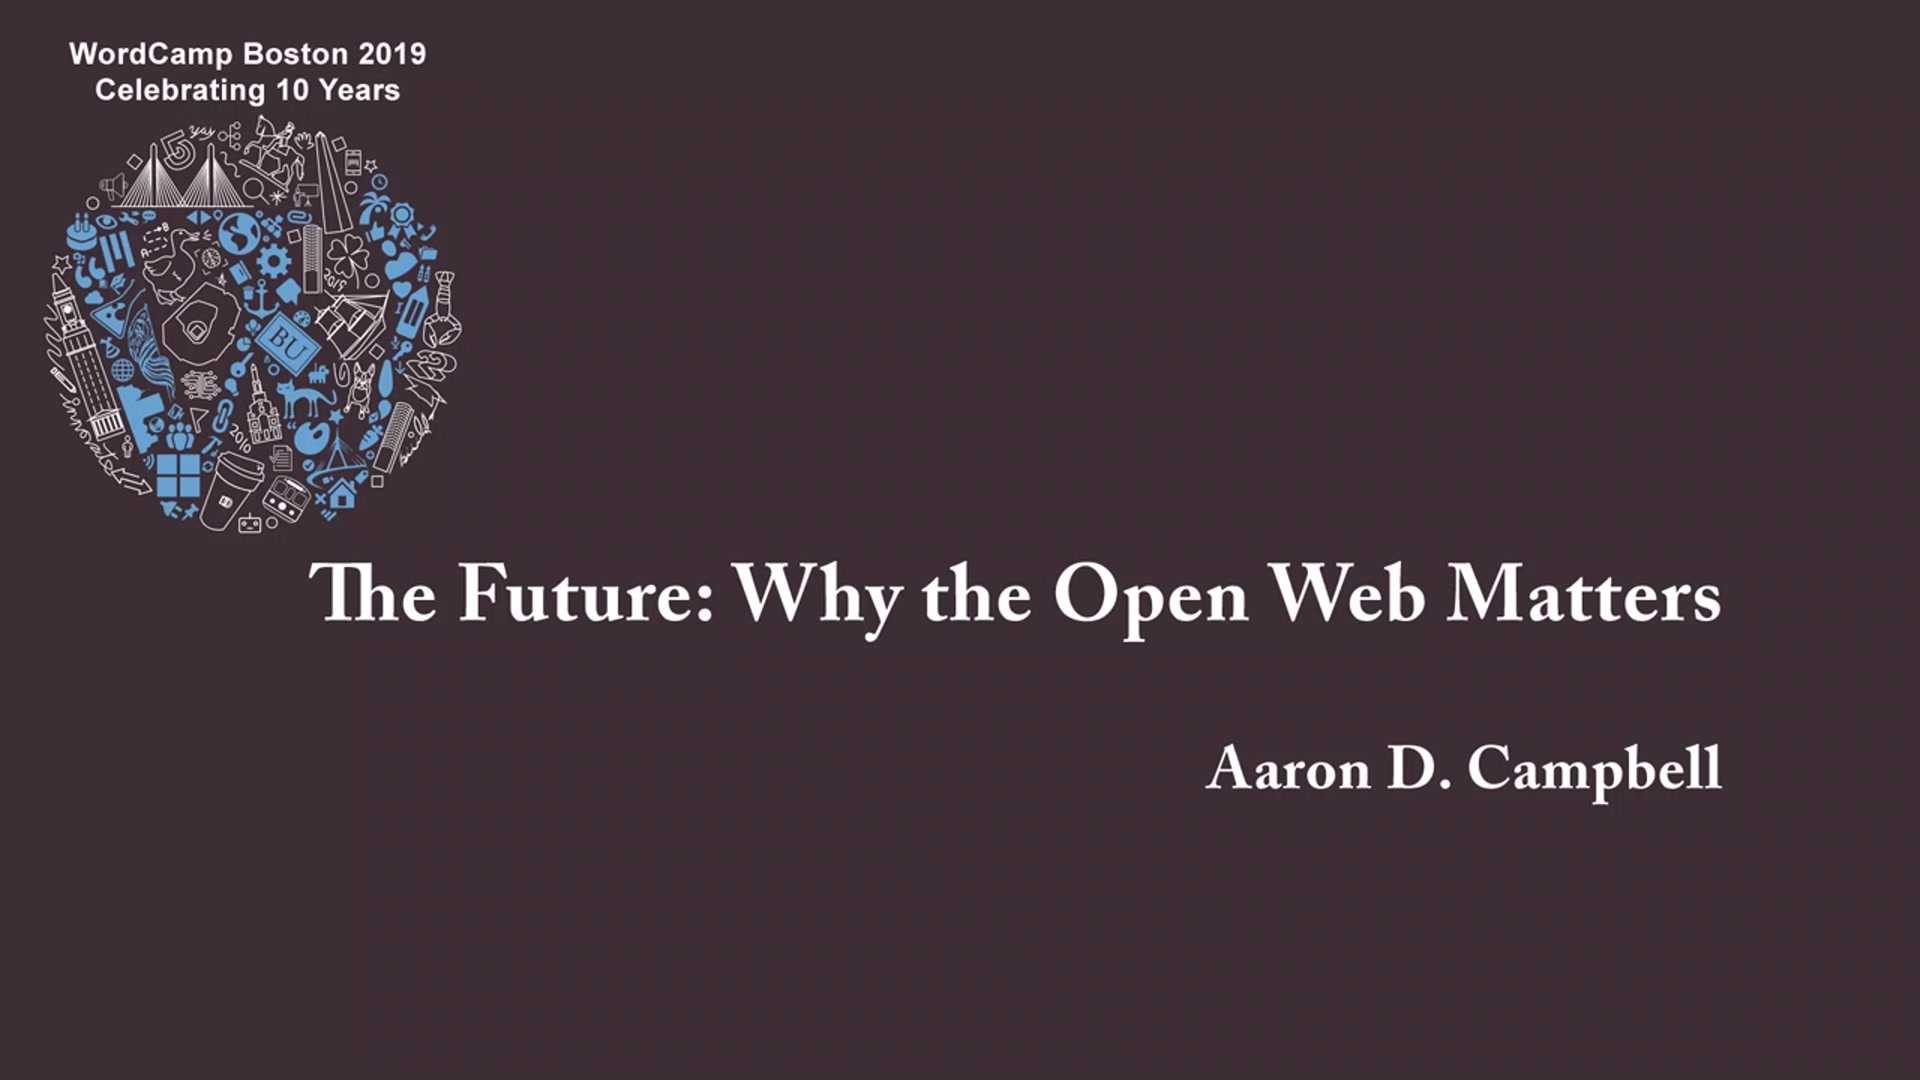 Aaron D. Campbell: The Future - Why the Open Web Matters